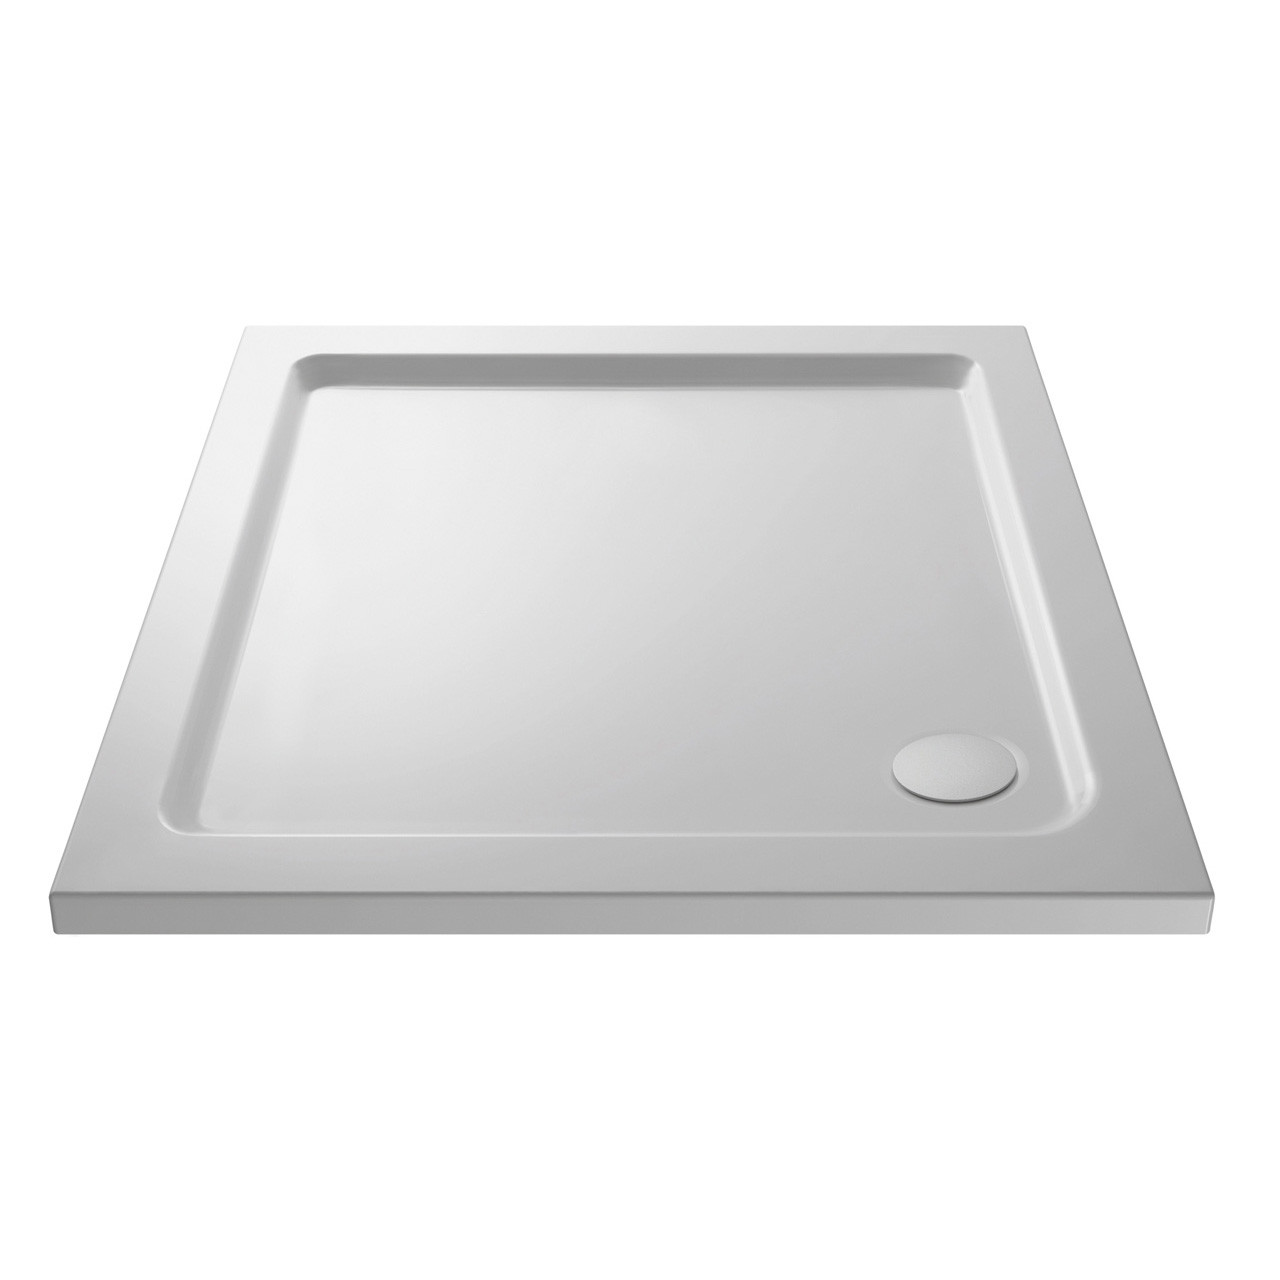 Premiere Pearlstone 800mm x 800mm x 40mm Square Shower Tray - NTP006